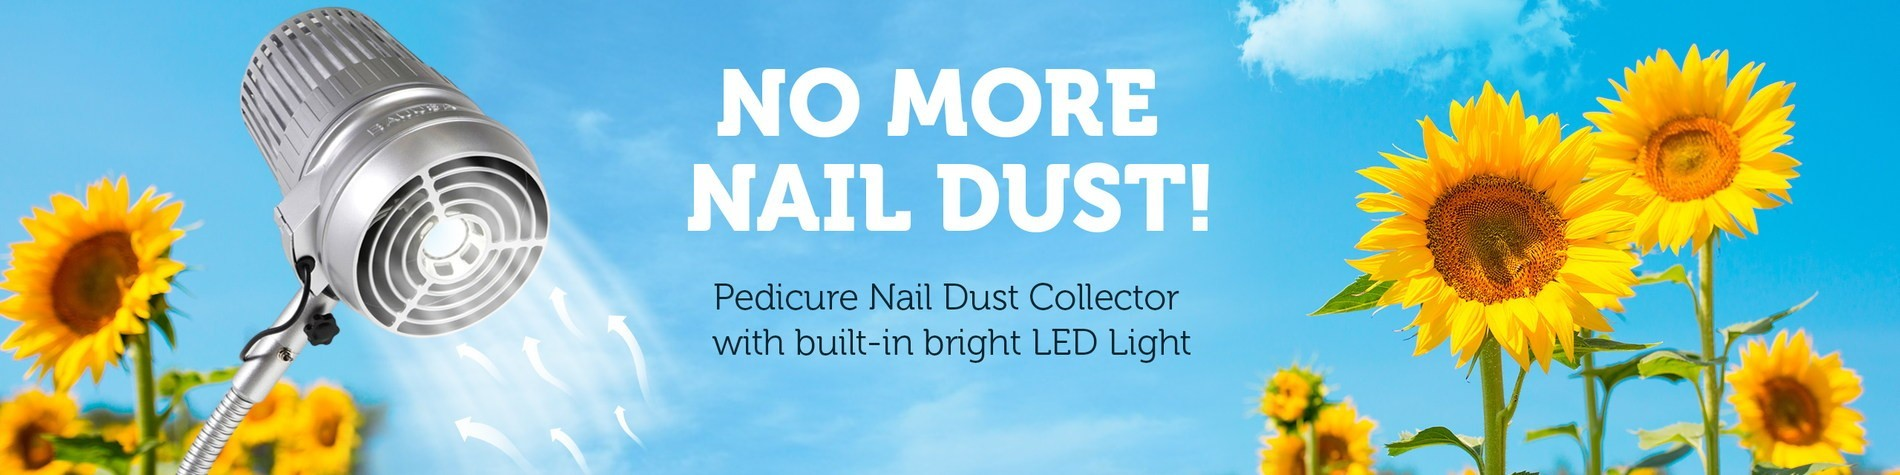 Pedicure nail dust collector - SUNFLOWER